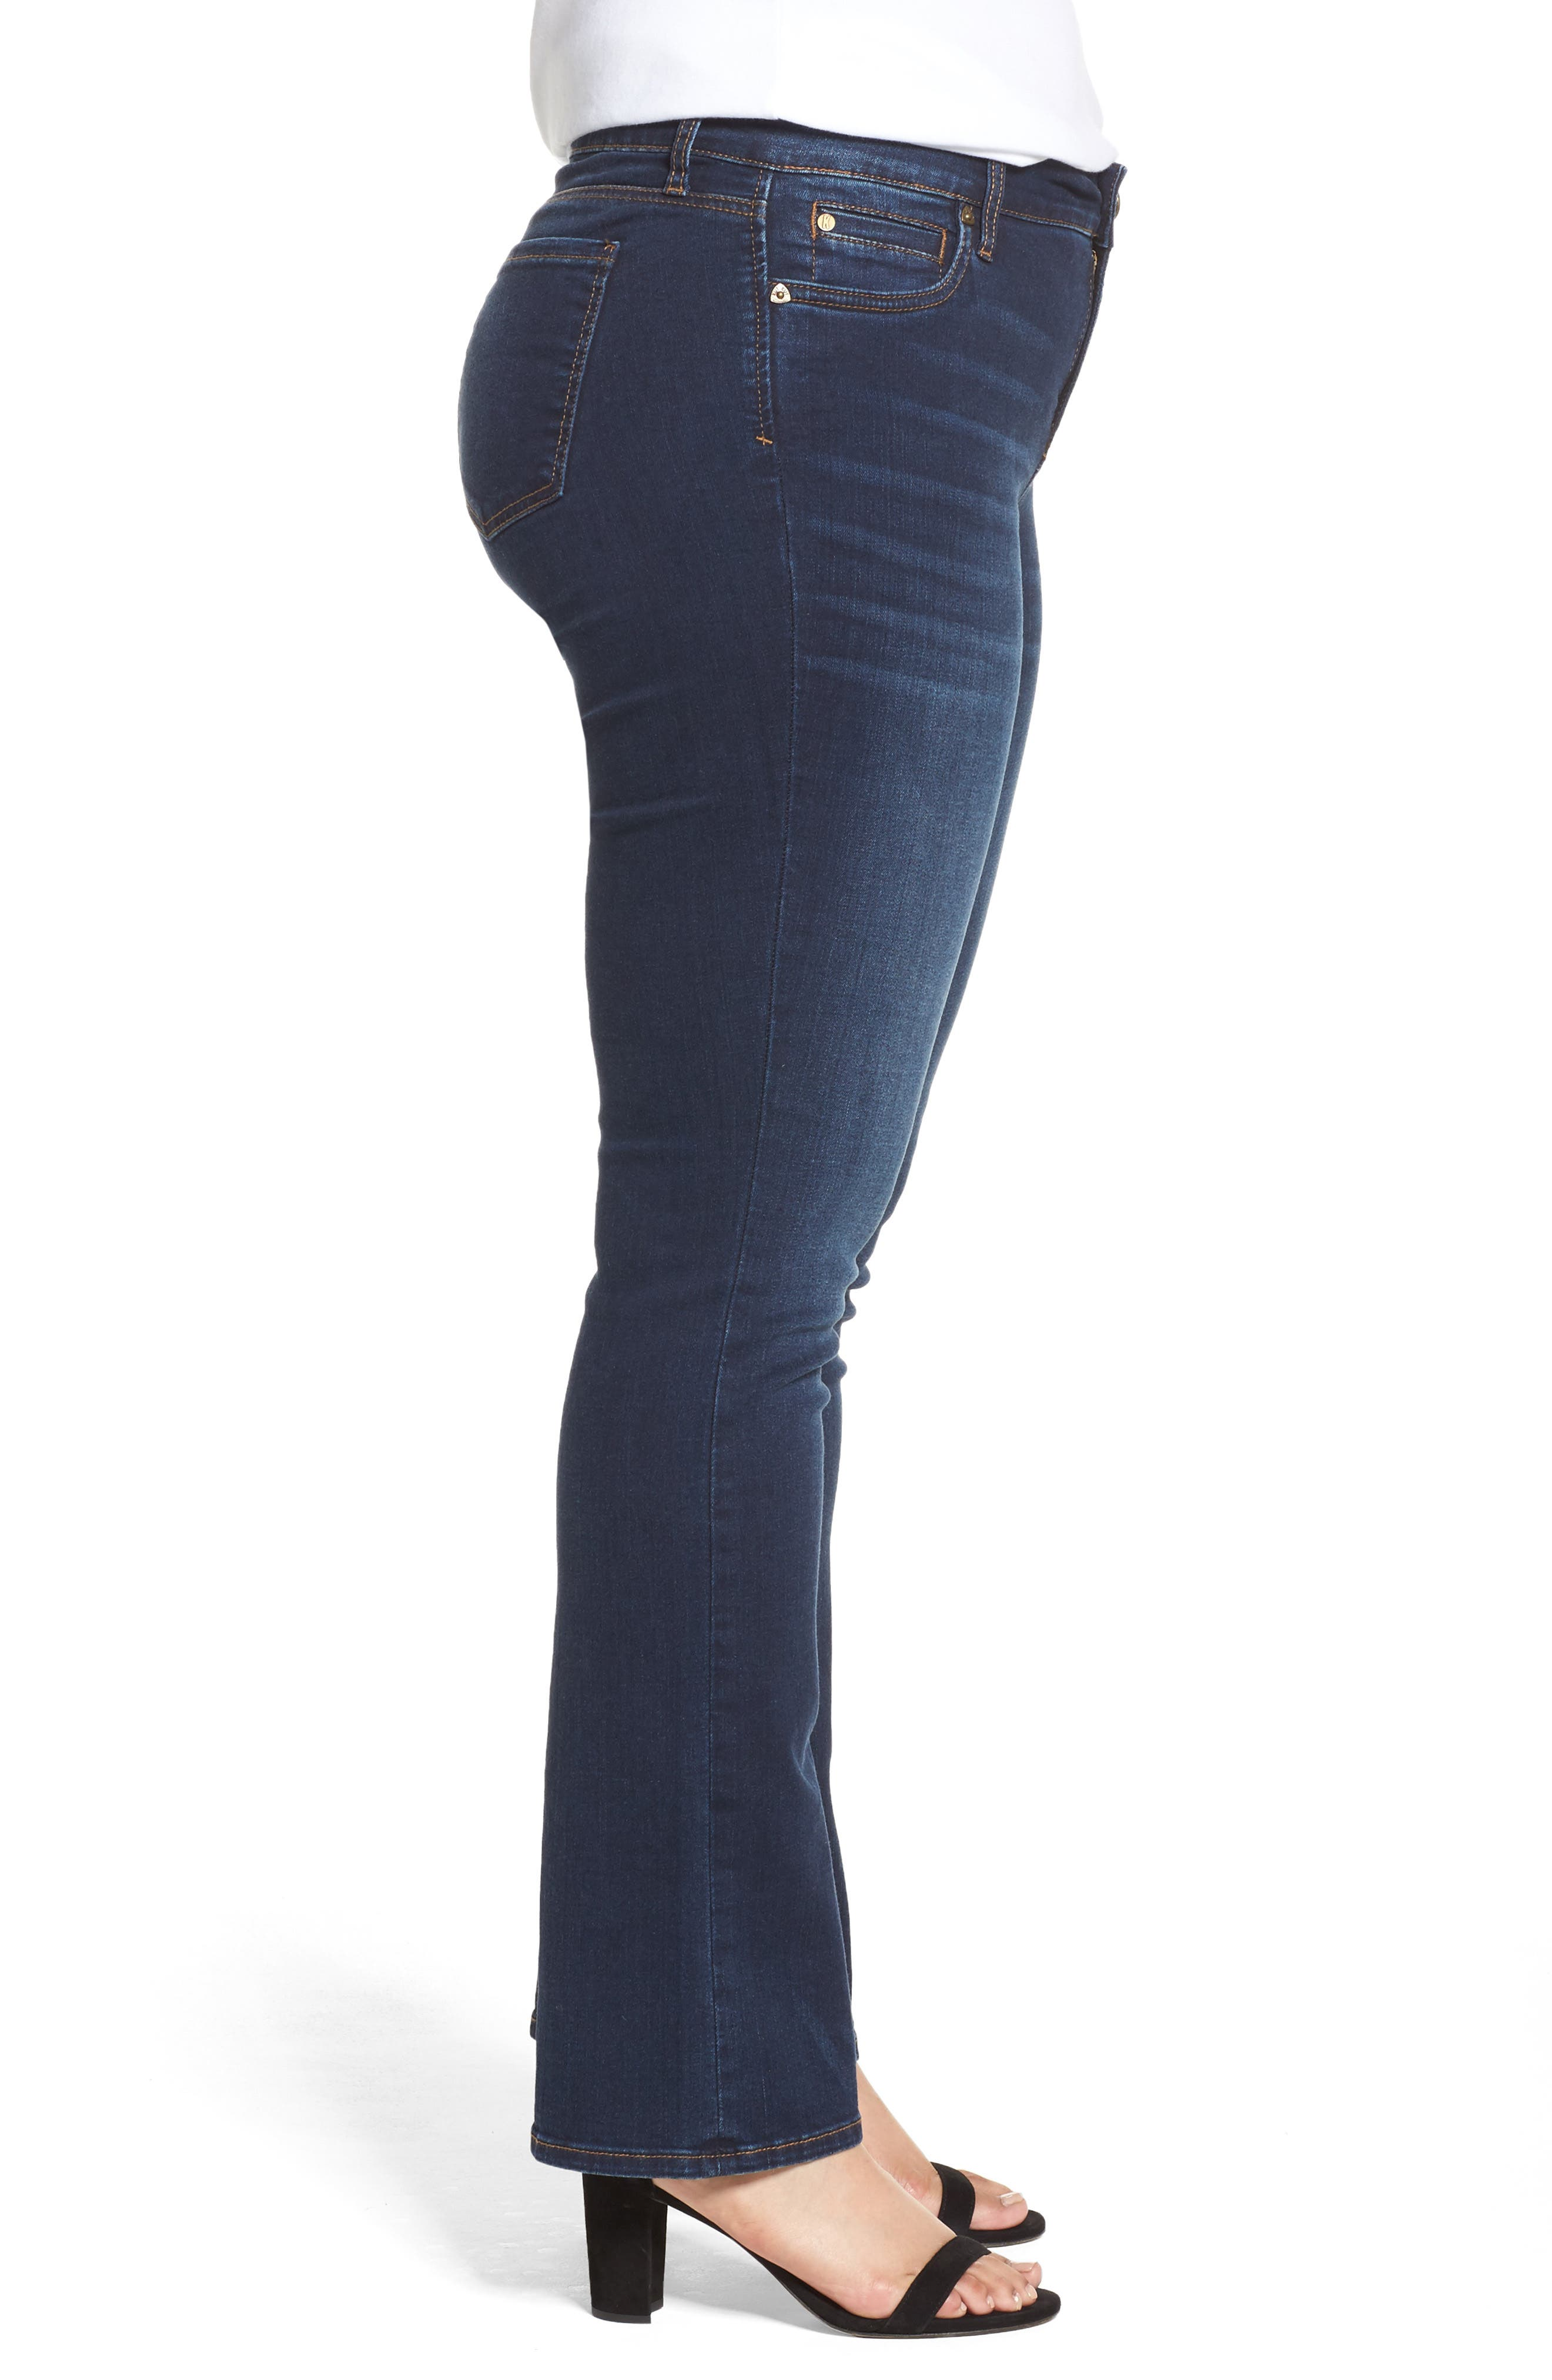 KUT FROM THE KLOTH, Natalie High Waist Bootcut Jeans, Alternate thumbnail 3, color, CLOSENESS W/ EURO BASE WASH